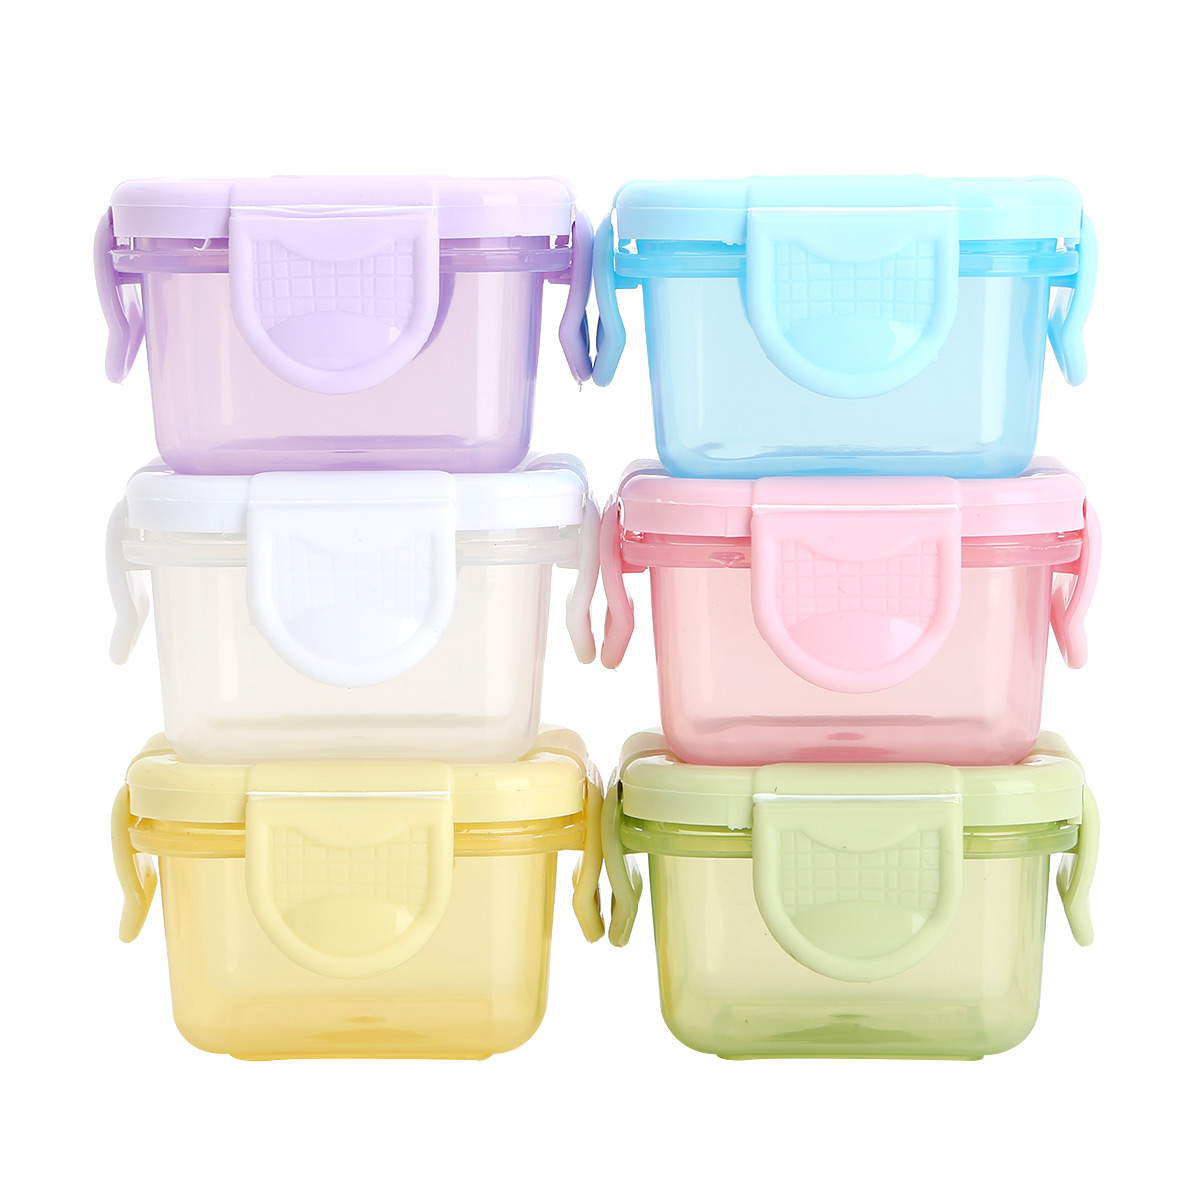 6pcs Baby Food Storage Freezer Containers BPA-Free Airtight Small Plastic Containers with Lids Baby Food Storage Containers